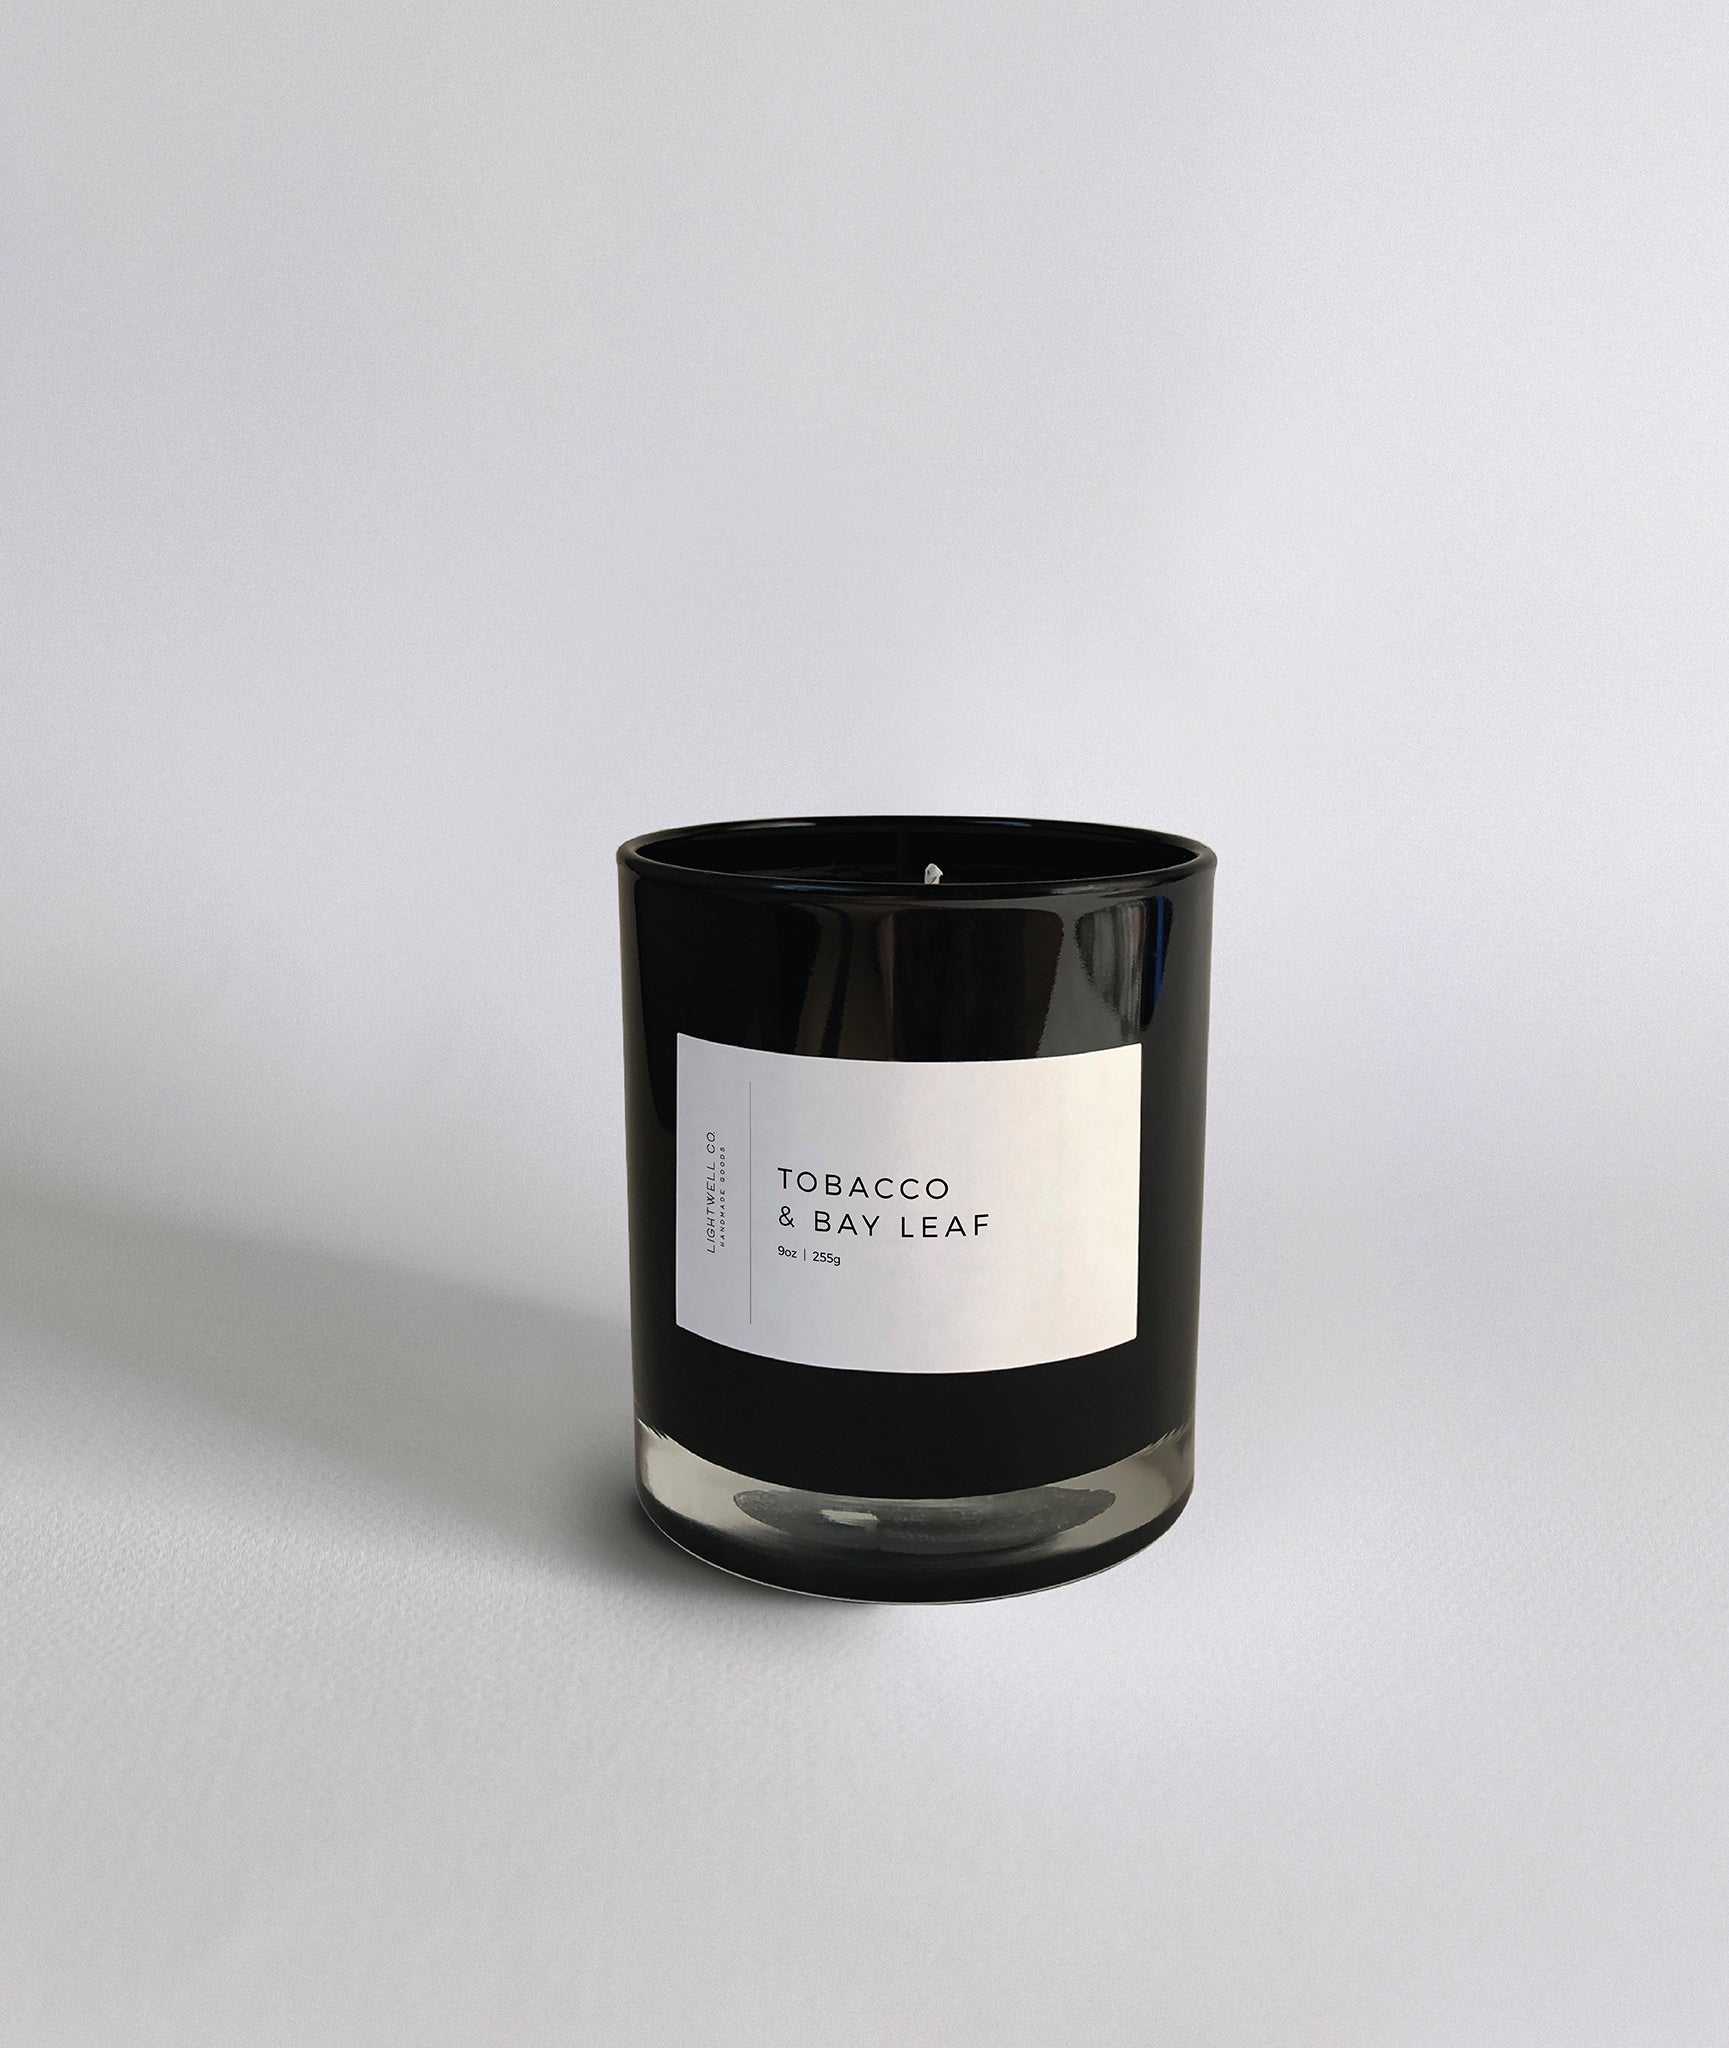 Tobacco & Bay Leaf Black Tumbler